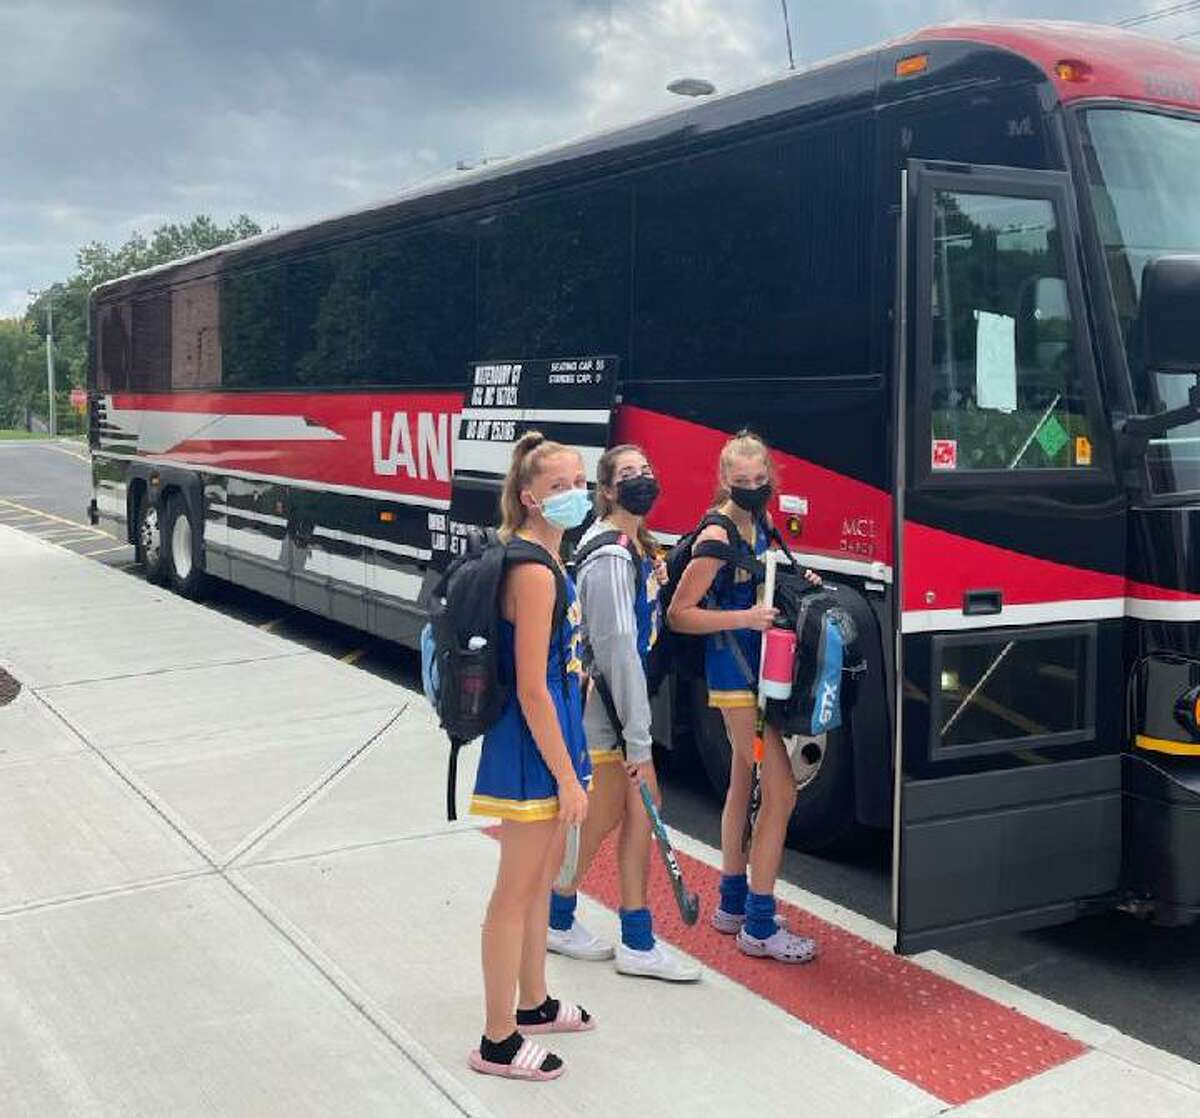 The Brookfield field hockey team boards a coach bus the Bobcats had to use to a game at Nonnewaug in Woodbury on Tuesday. Brookfield is one of many school districts that have had to find alternative modes of transportation due to a bus shortage.